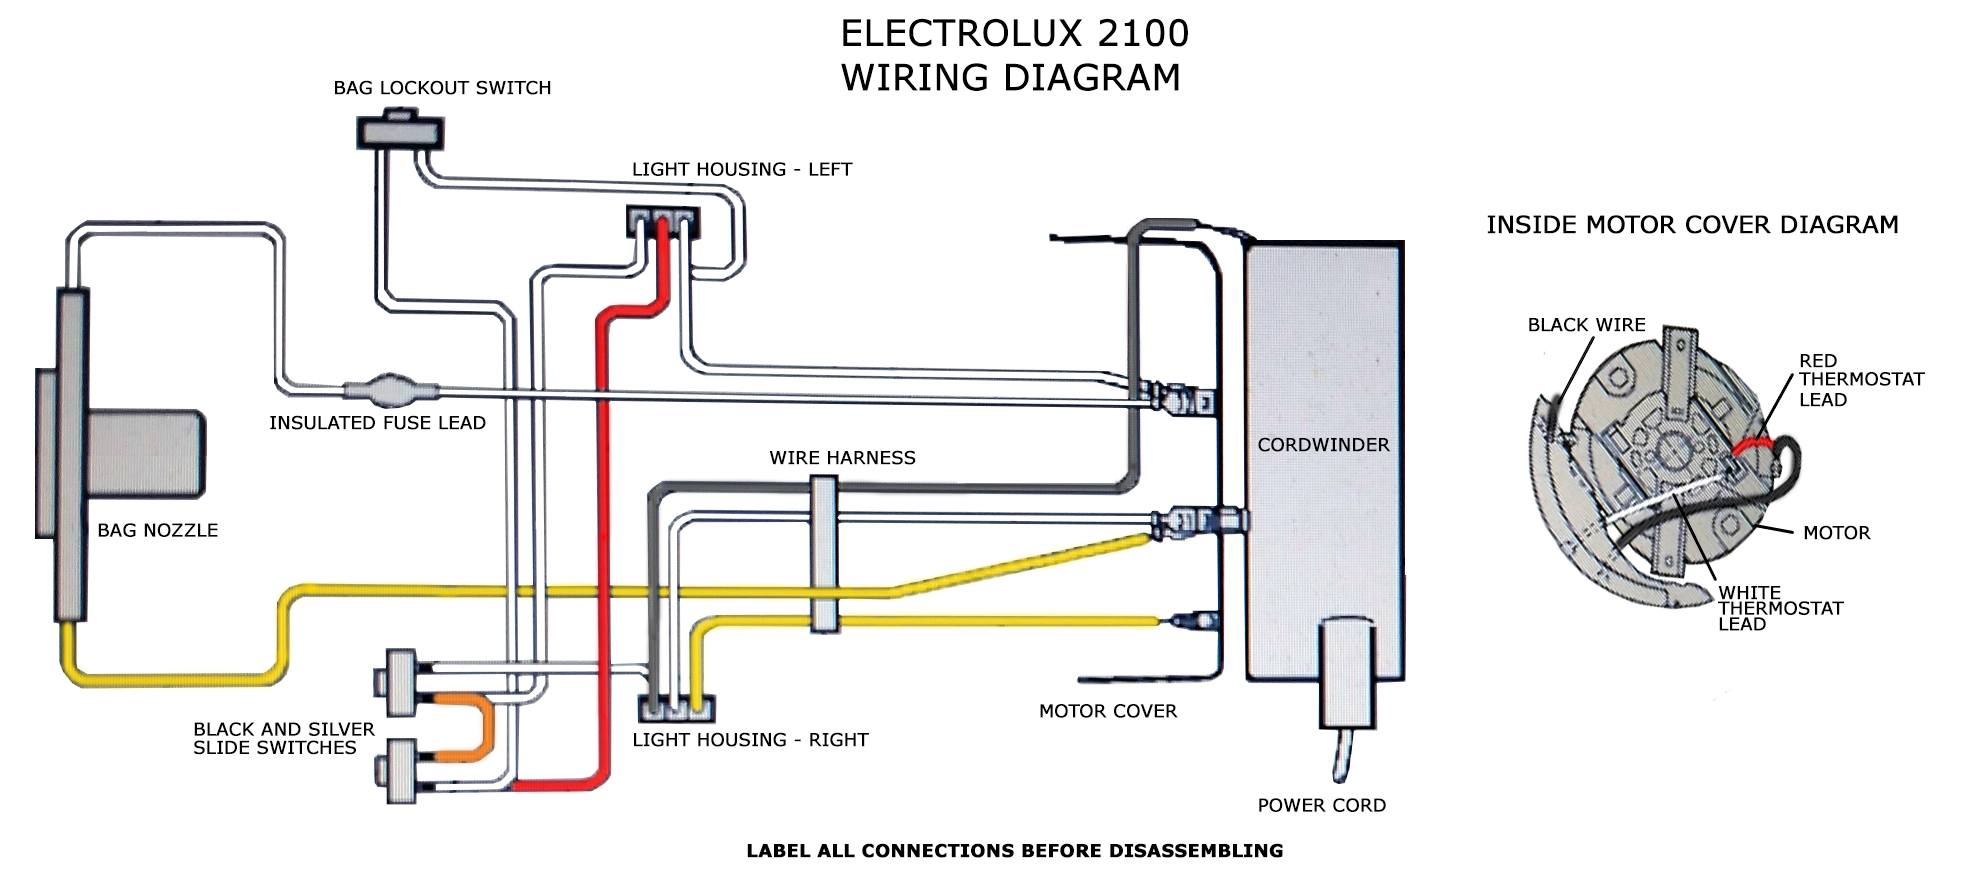 2100 wiring diagram electrolux 2100 wiring diagram electrolux wiring diagram at creativeand.co